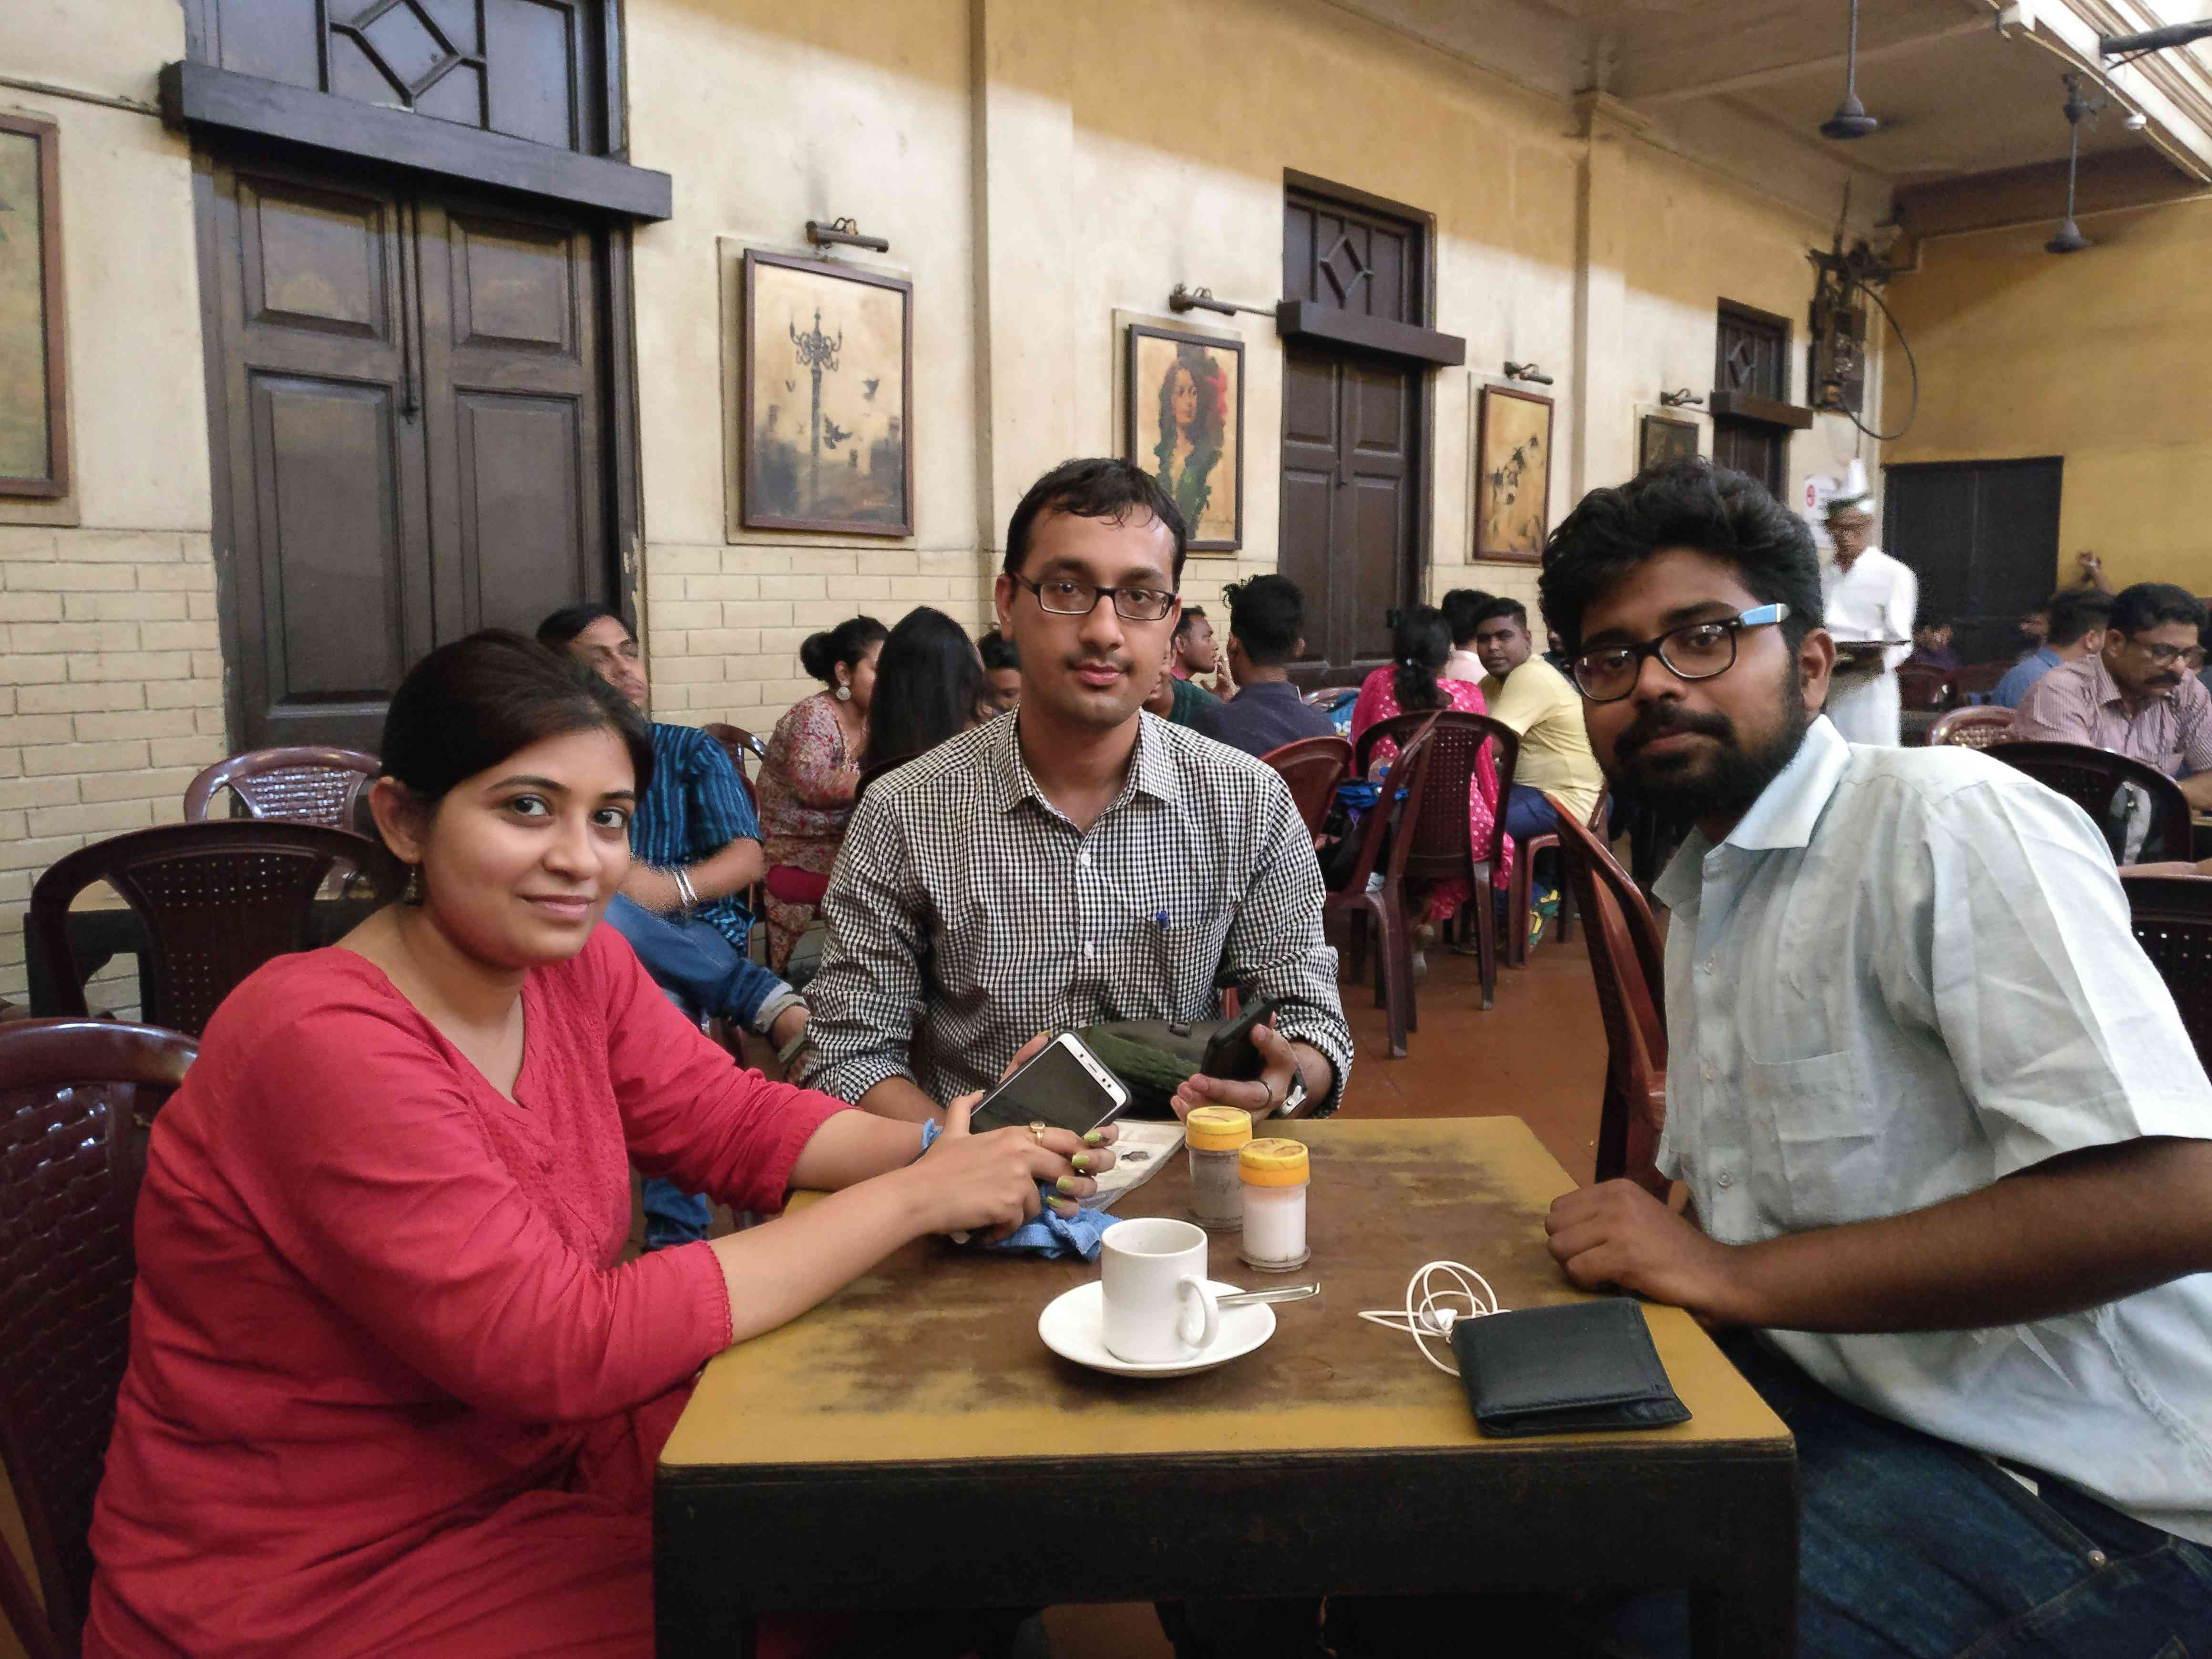 Aditya Aashish, centre, at Kolkata's iconic Coffee House. He believes 'Modi is working towards the development of the country'. Photo credit: Shoaib Daniyal